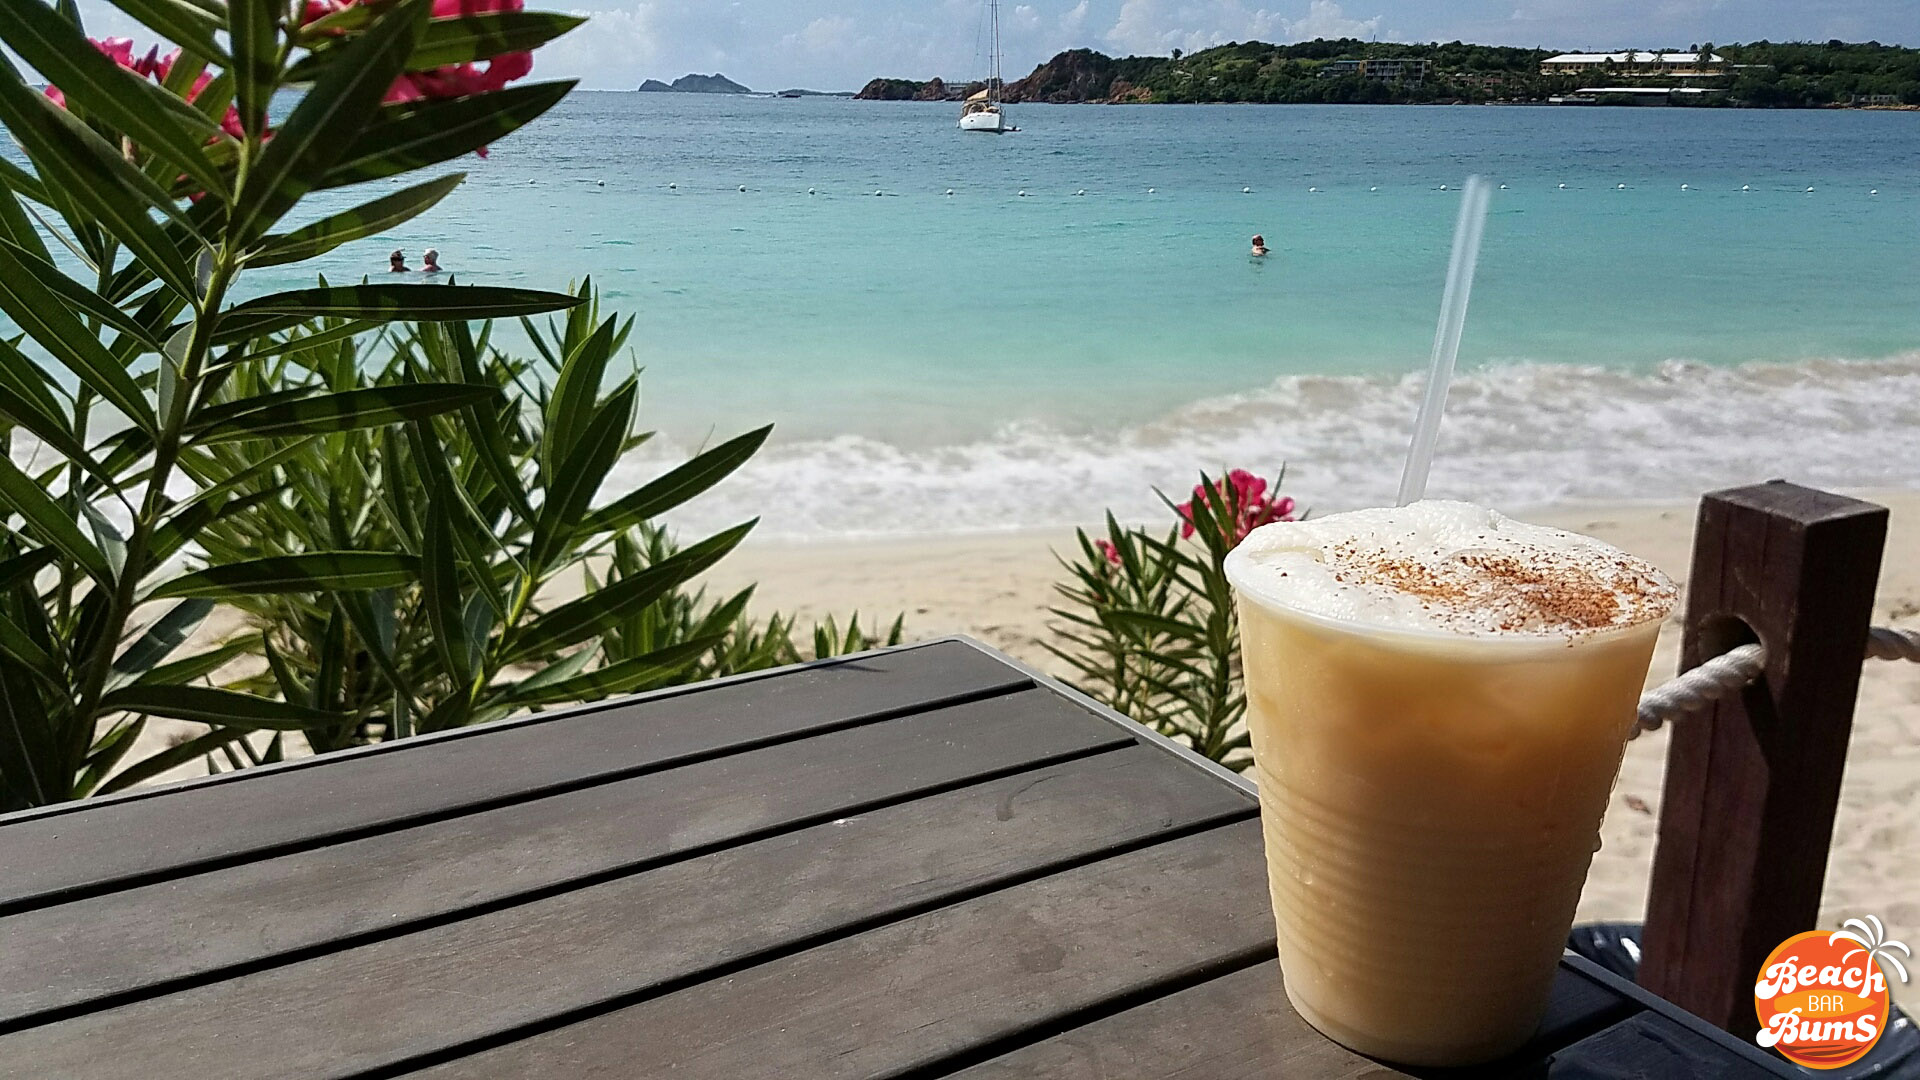 painkiller, caribbean, lindbergh bay, st. thomas, emerald beach resort, usvi, us virgin islands